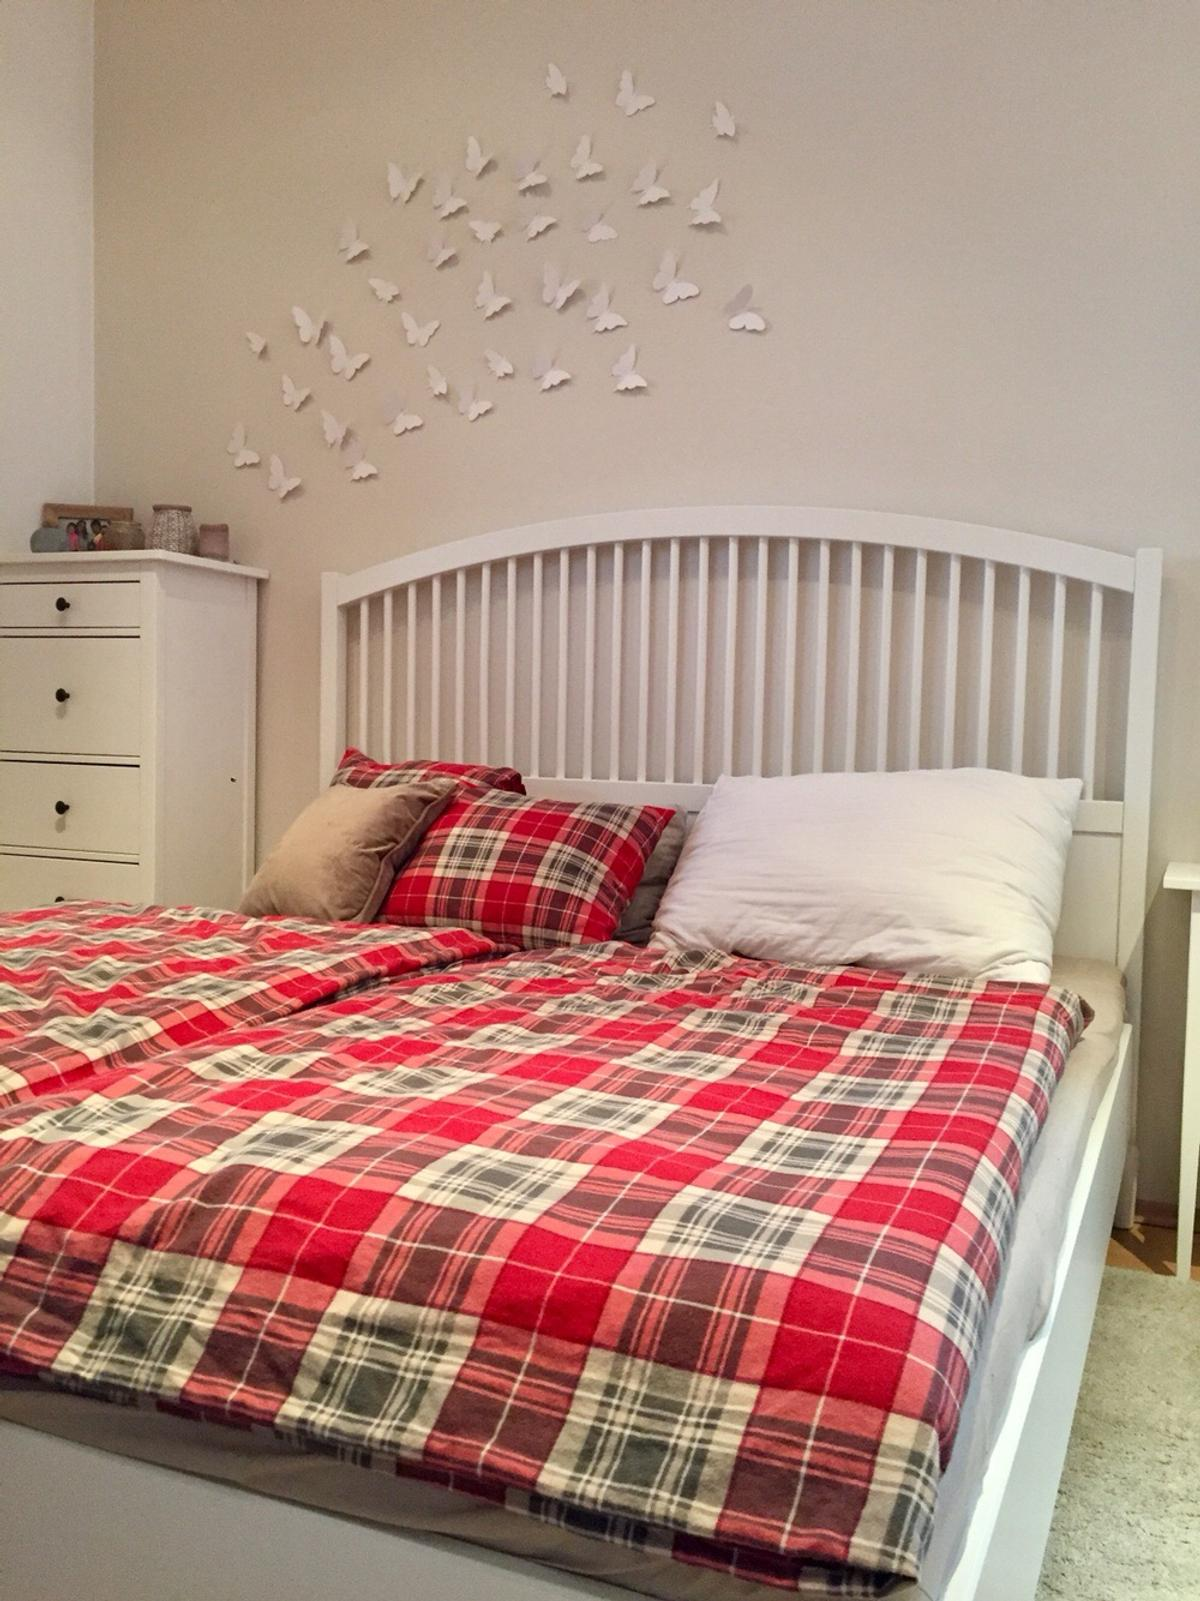 Ikea Bett 180x200 Tyssedal In 3508 Horfarth For 290 00 For Sale Shpock